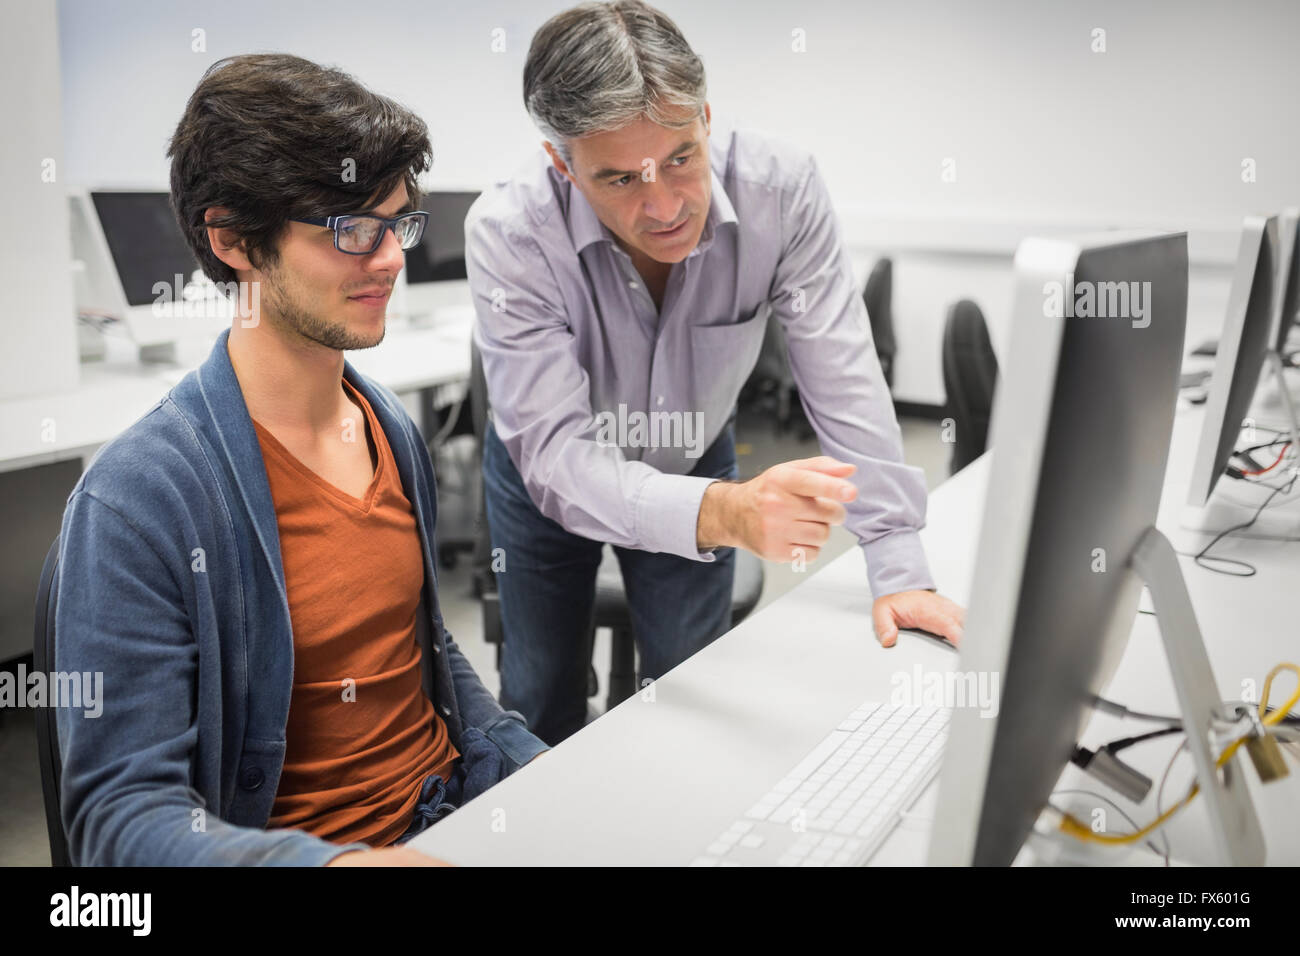 Computer teacher assisting a student - Stock Image